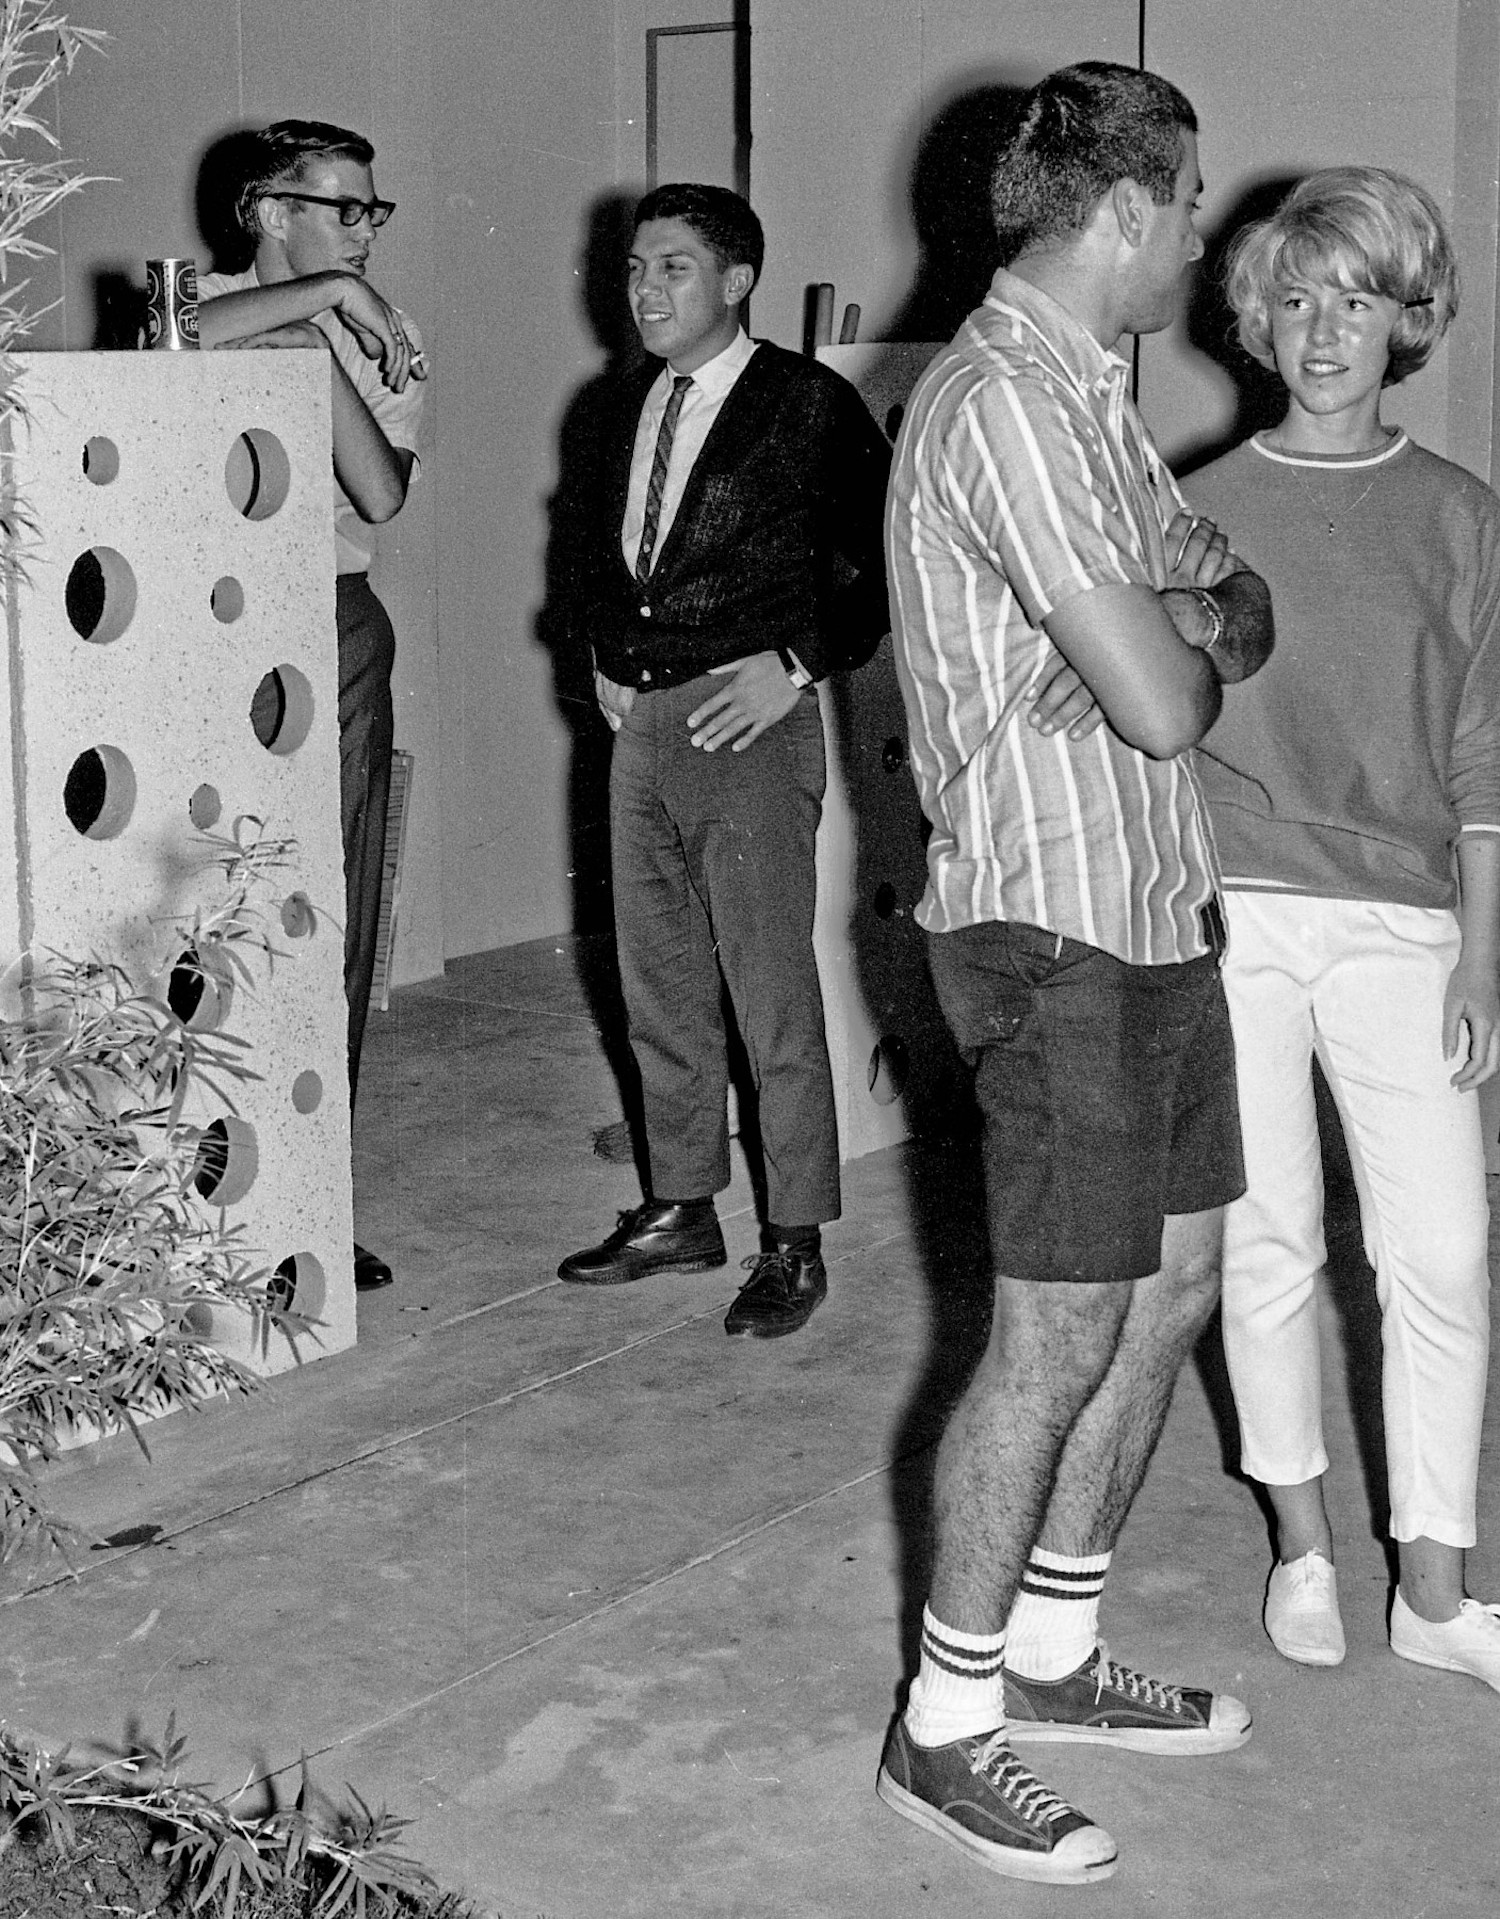 Casual dance party circa 1965, Fresno State College